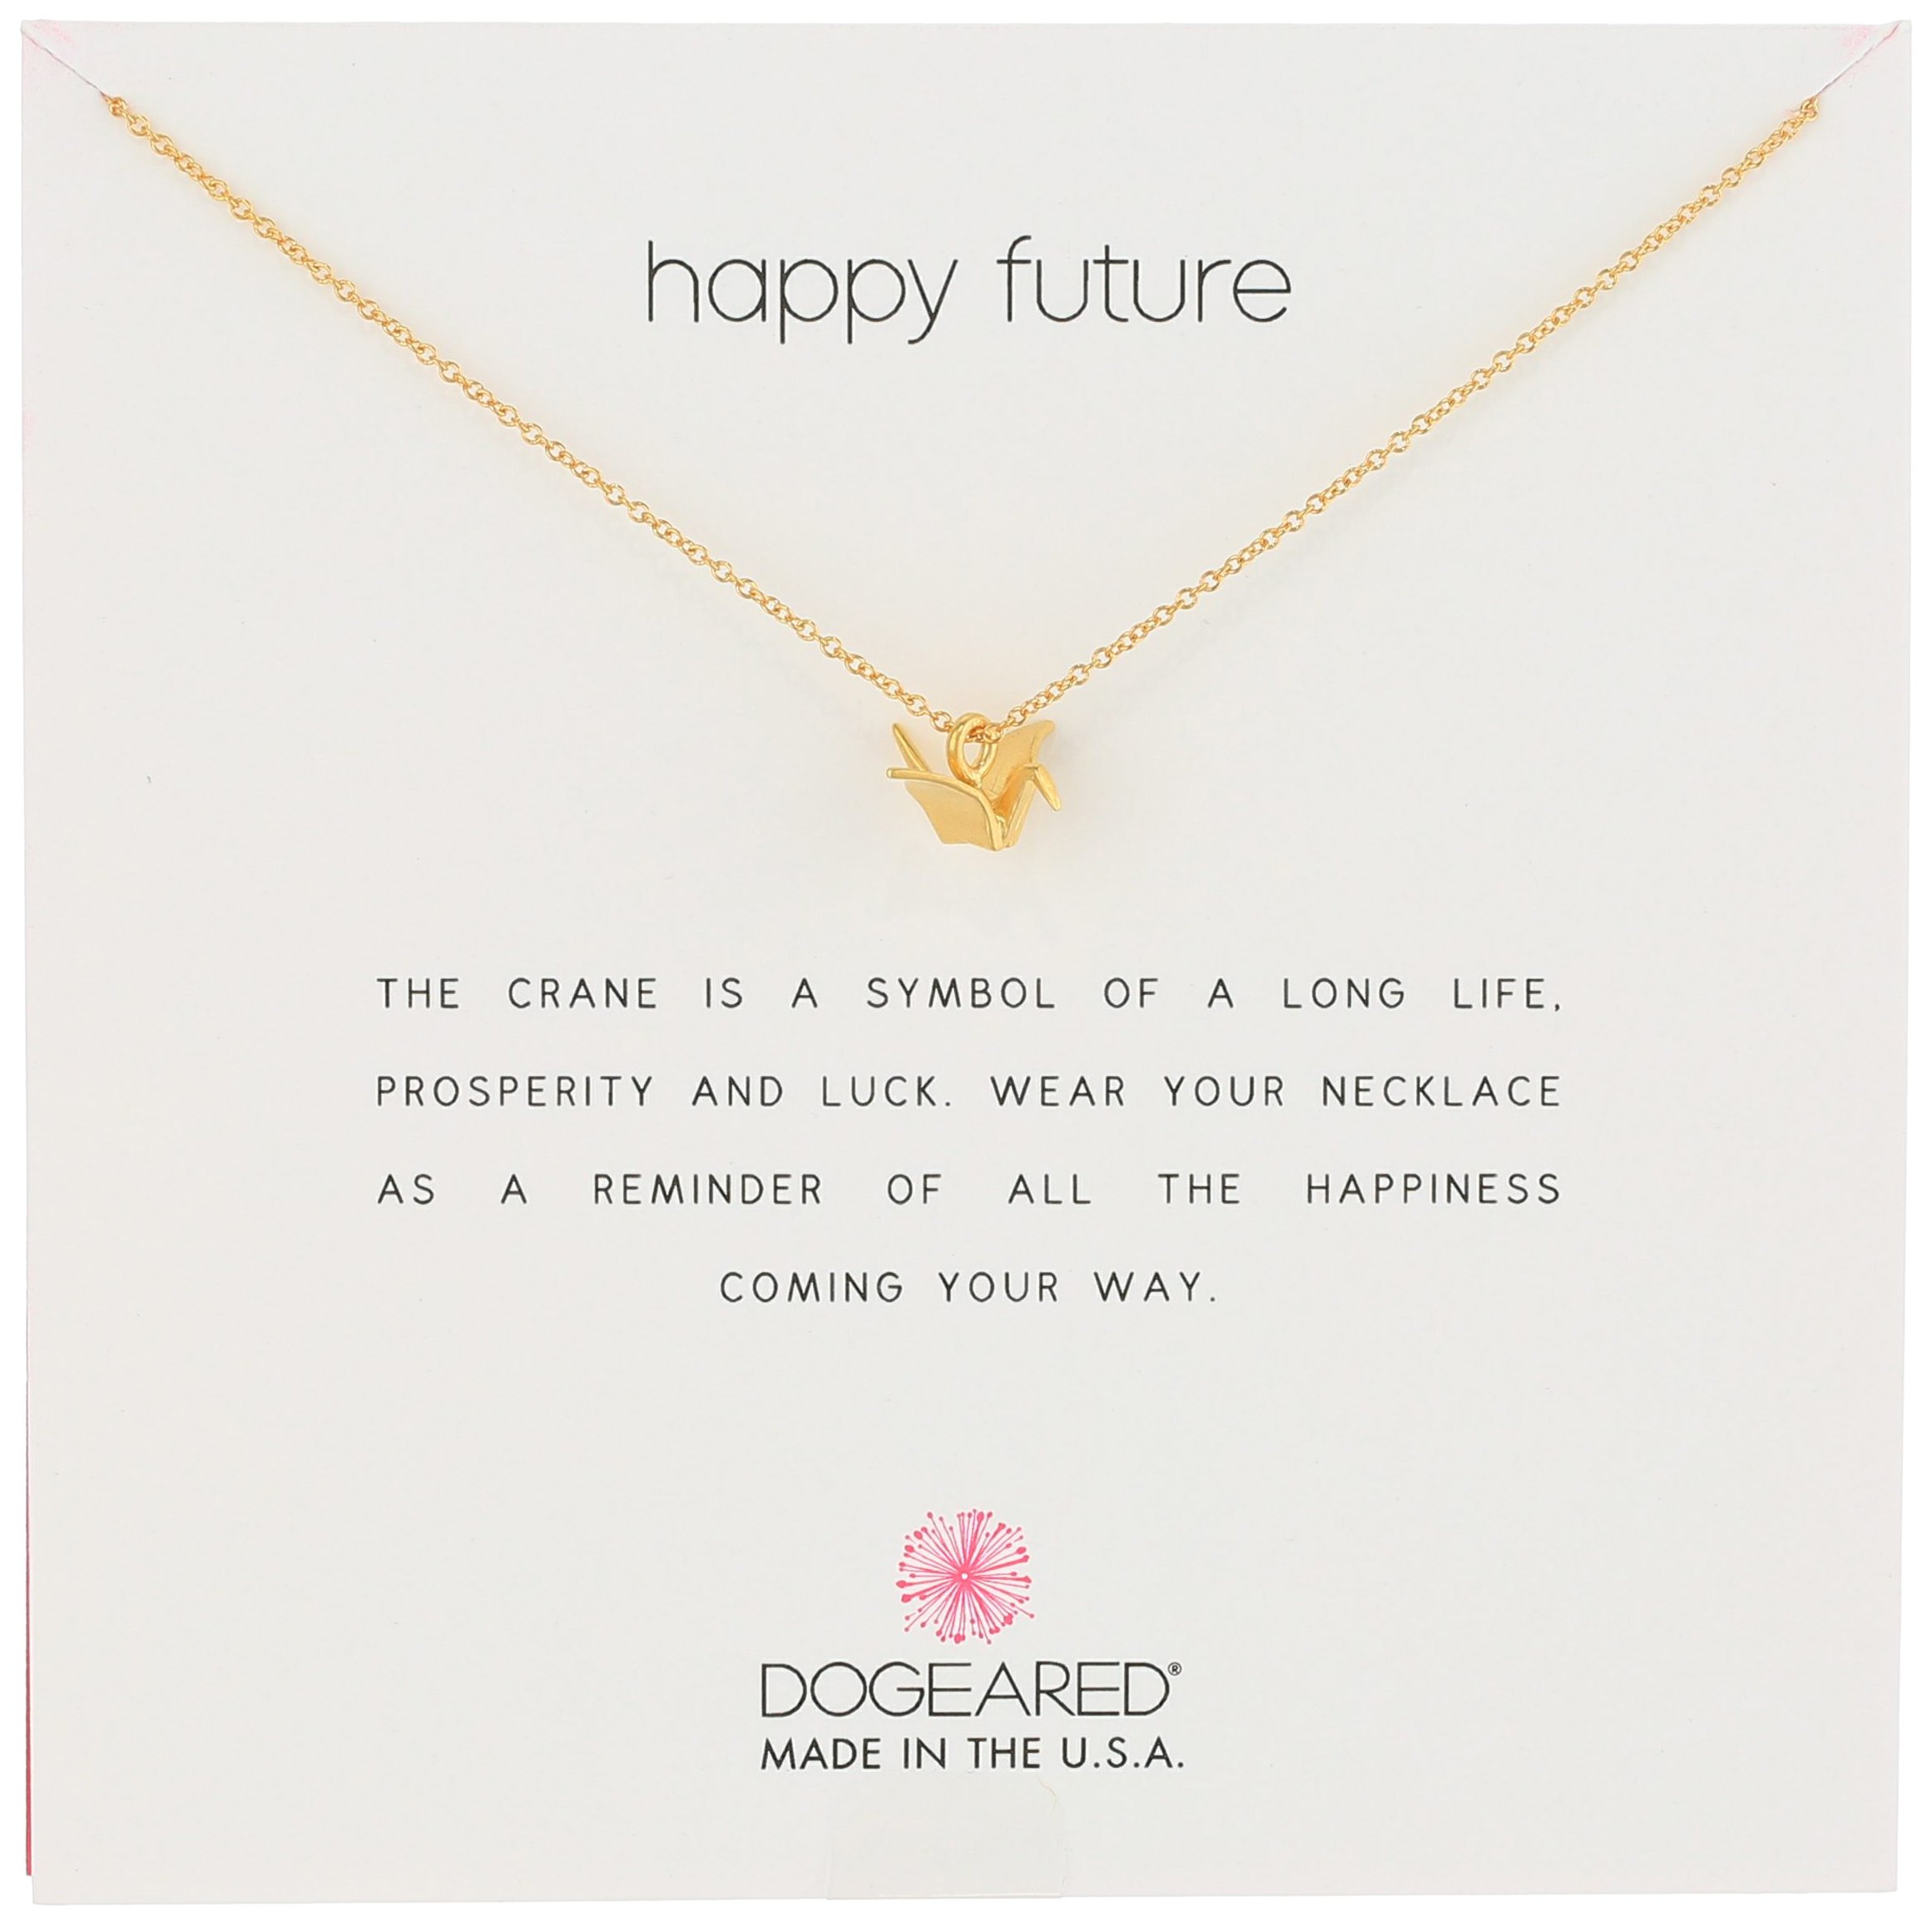 Dogeared Reminders- Happy Future' Gold Dipped Sterling Silver Oragami Crane Charm Necklace, 16''+2'' Extender